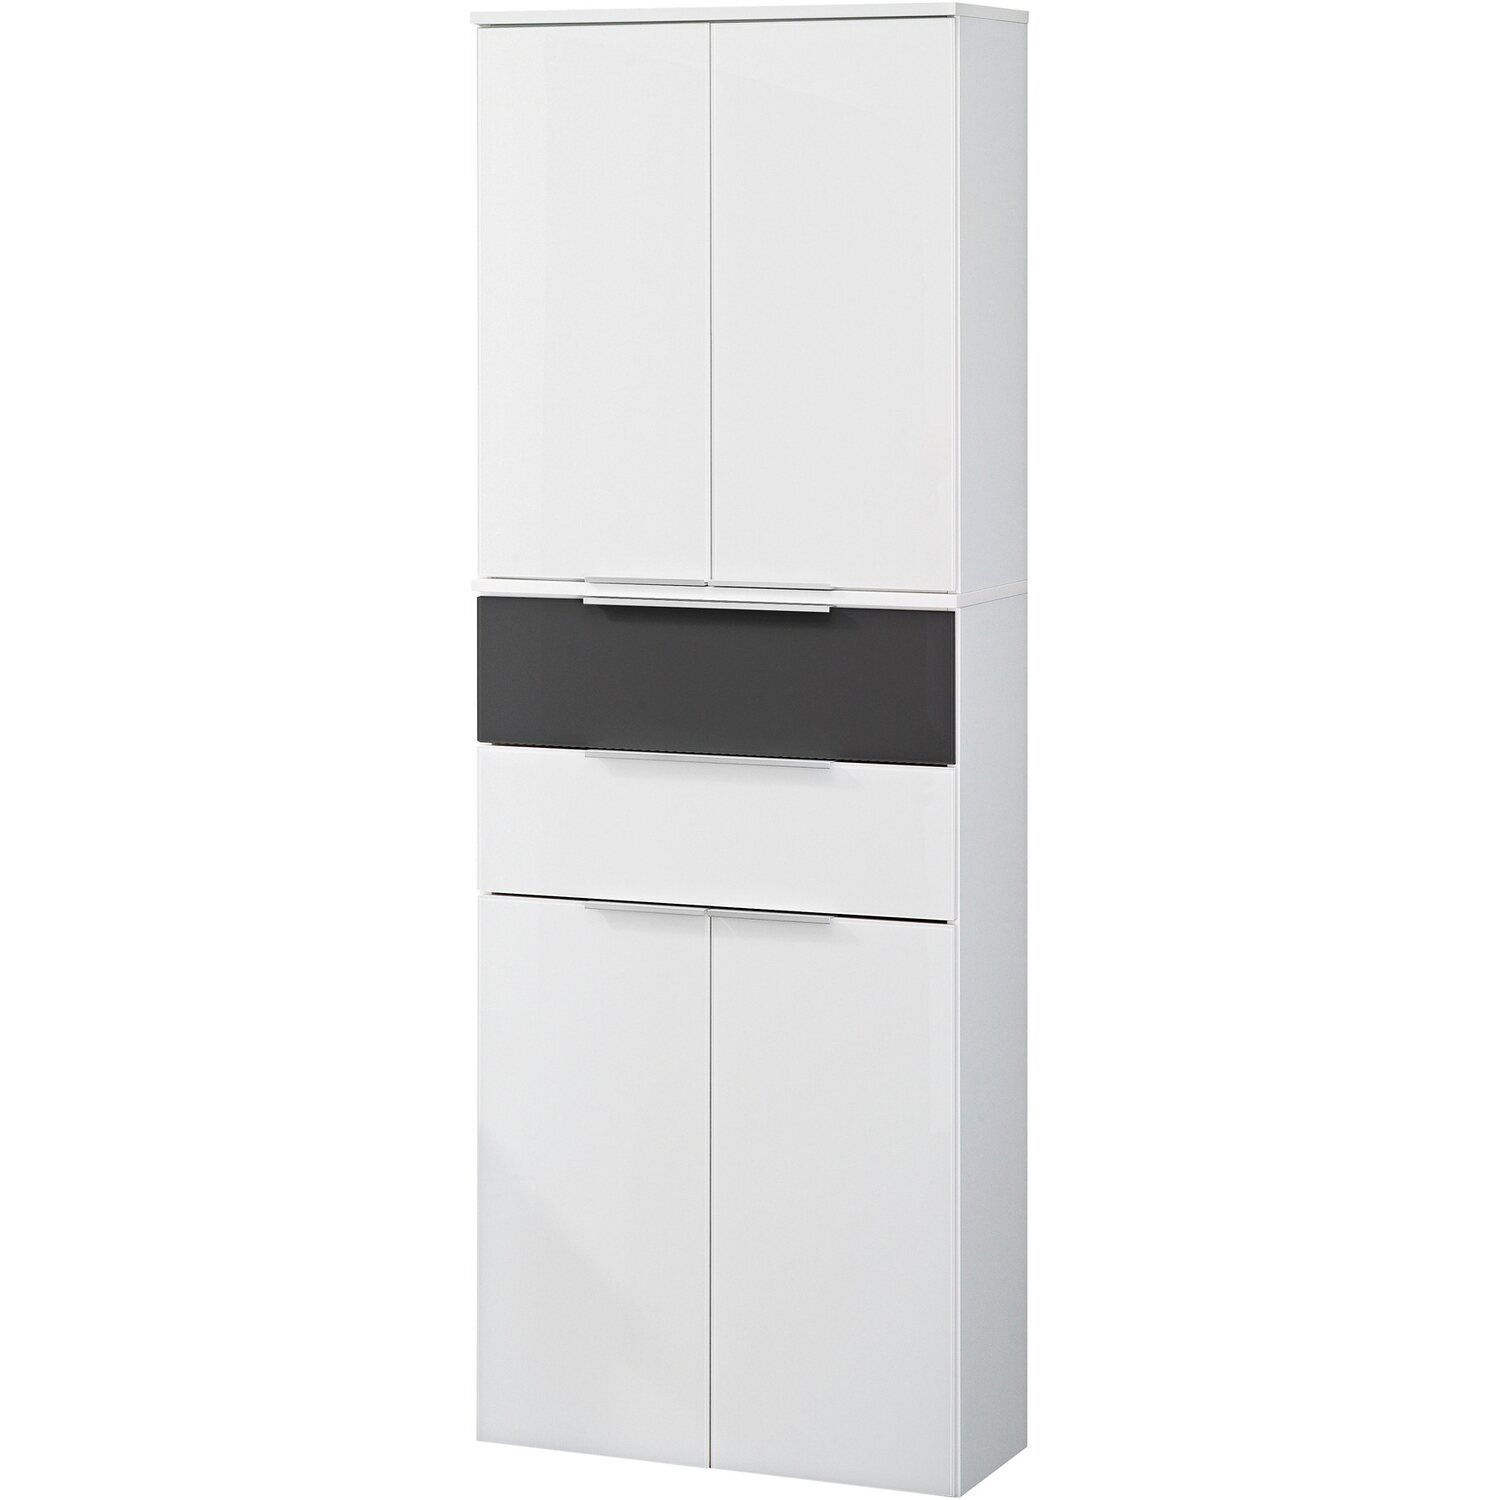 fackelmann hochschrank 61 cm kara bianco wei anthrazit kaufen bei obi. Black Bedroom Furniture Sets. Home Design Ideas